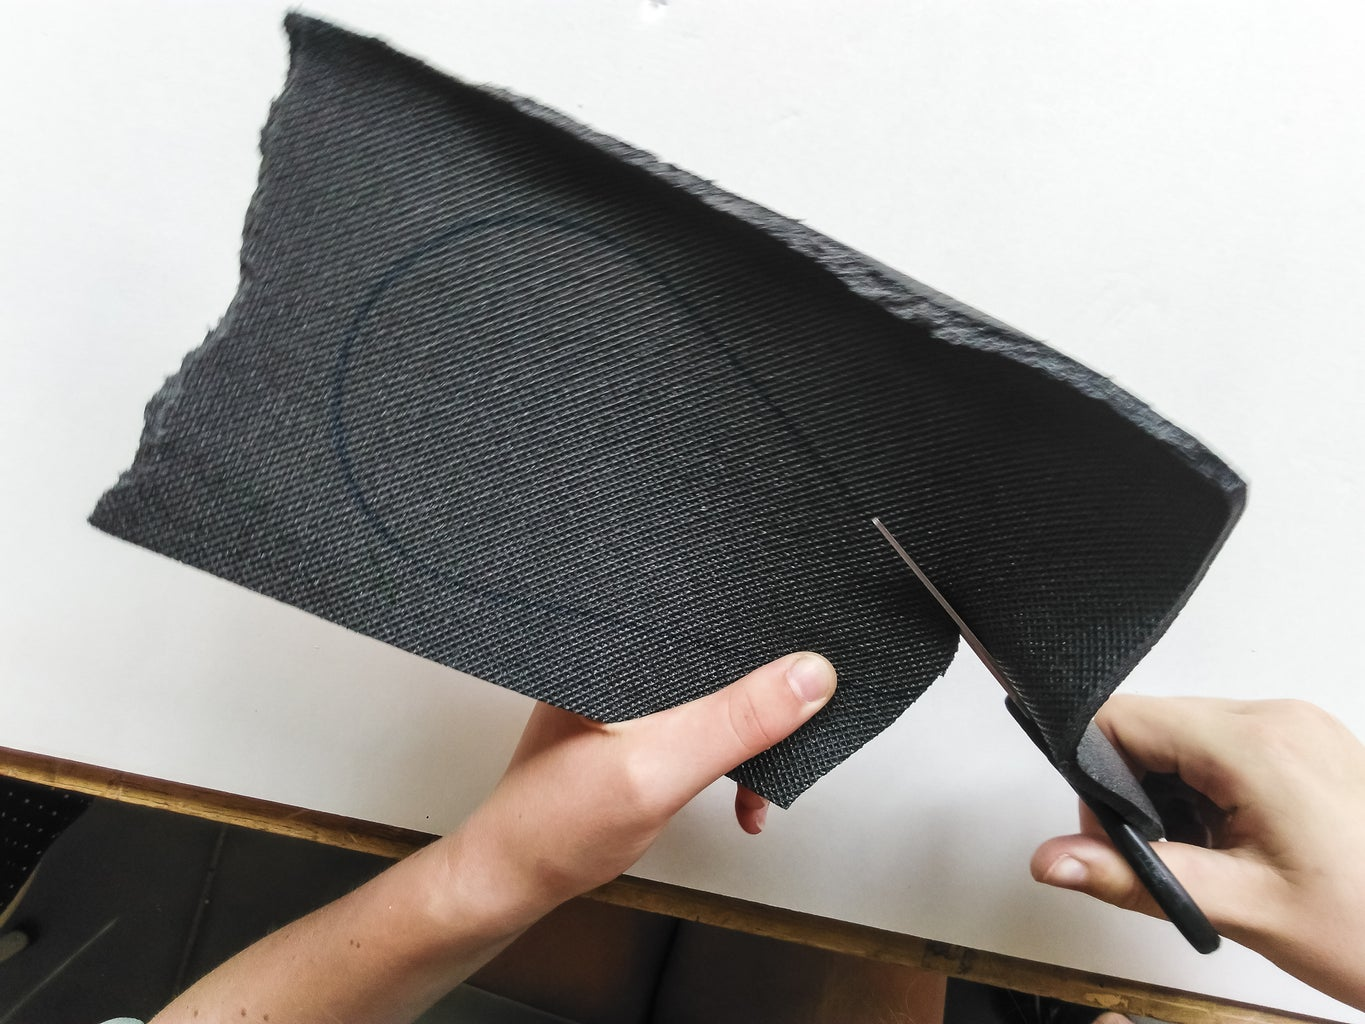 Make the Foamcover for the Bottom